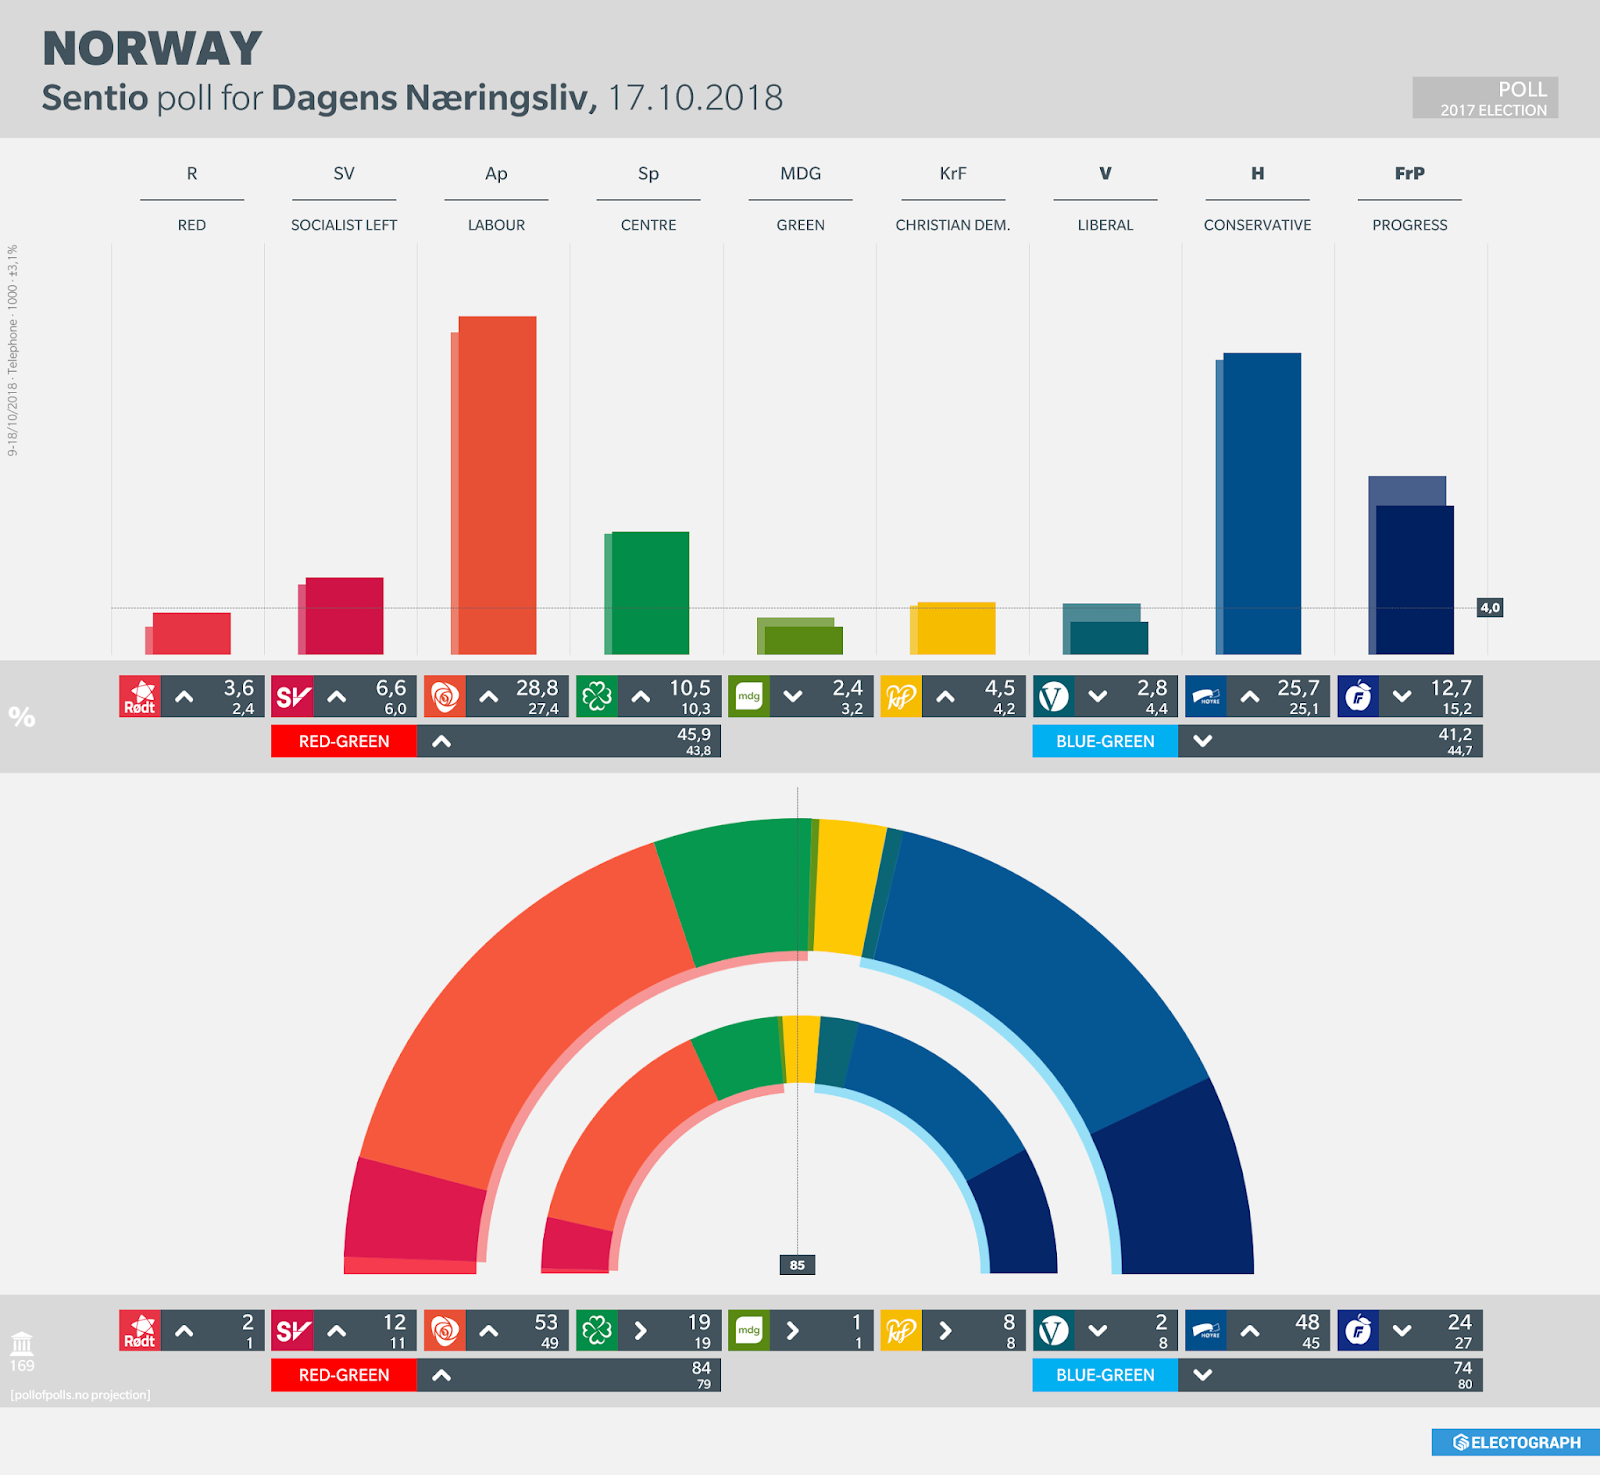 NORWAY: Sentio poll chart for Dagens Næringsliv, October 2018